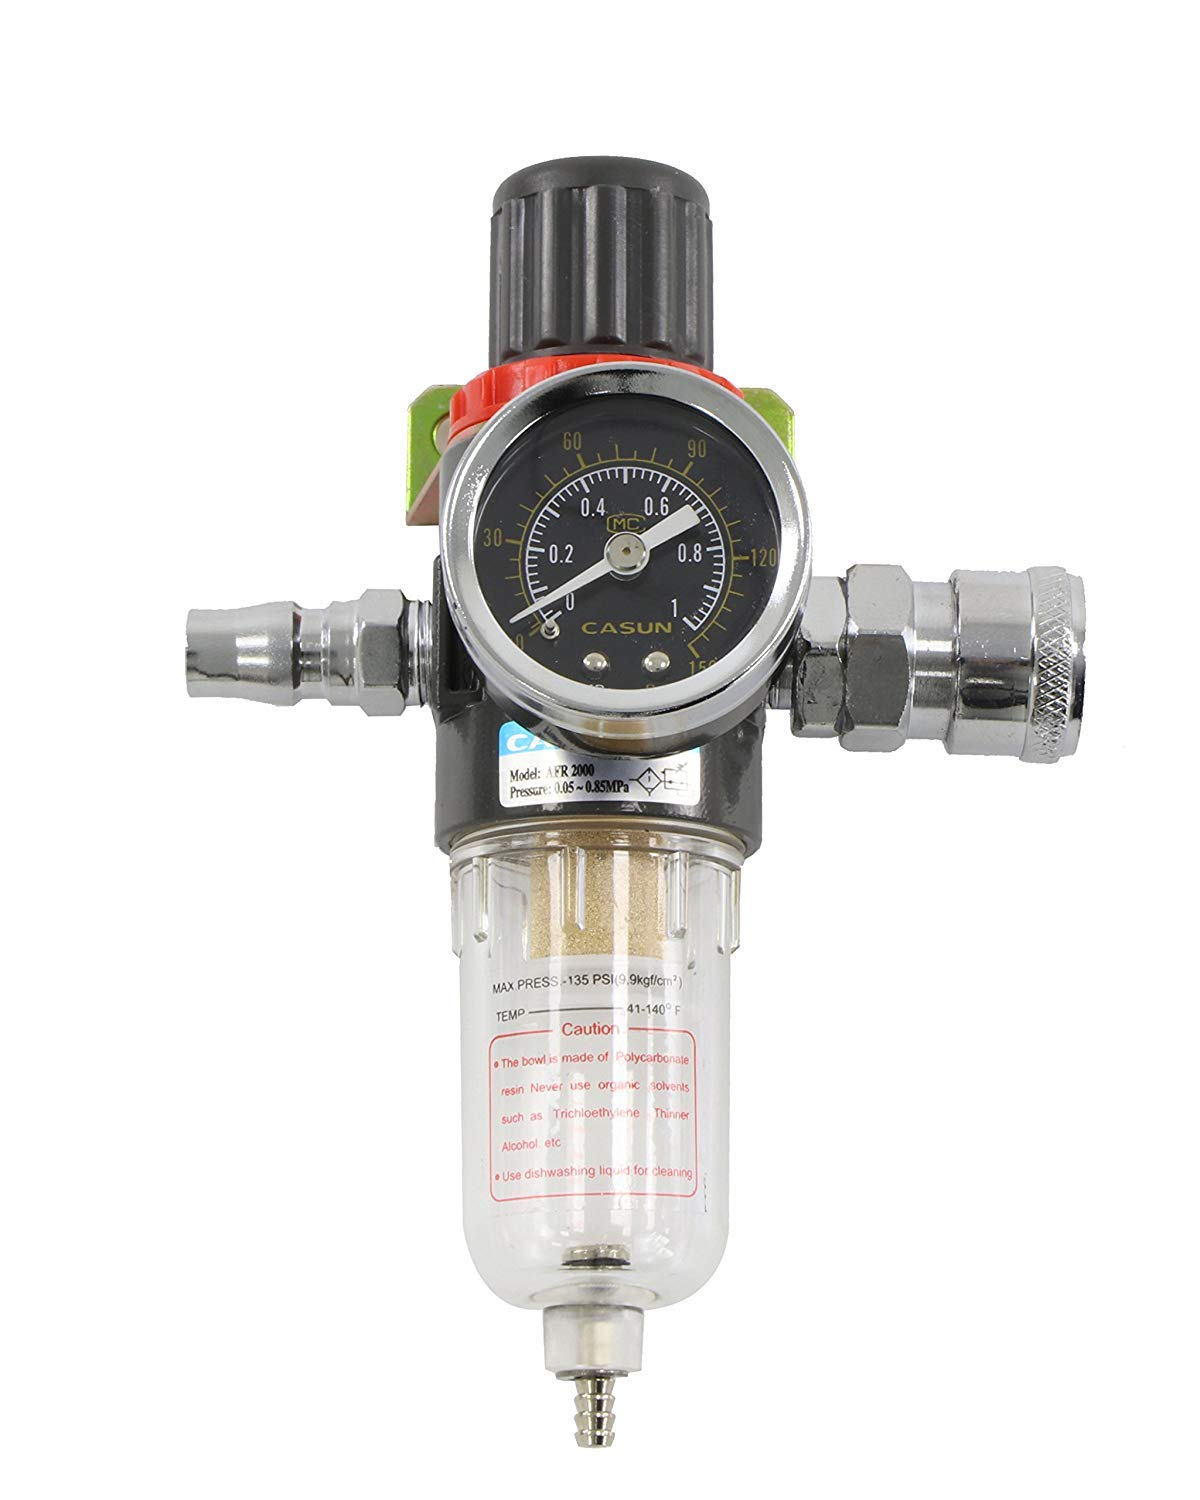 Sutekus Water and Oil Separator for Air Line 1//4 BSP Inlet and Outlet Air Compressor Regulator